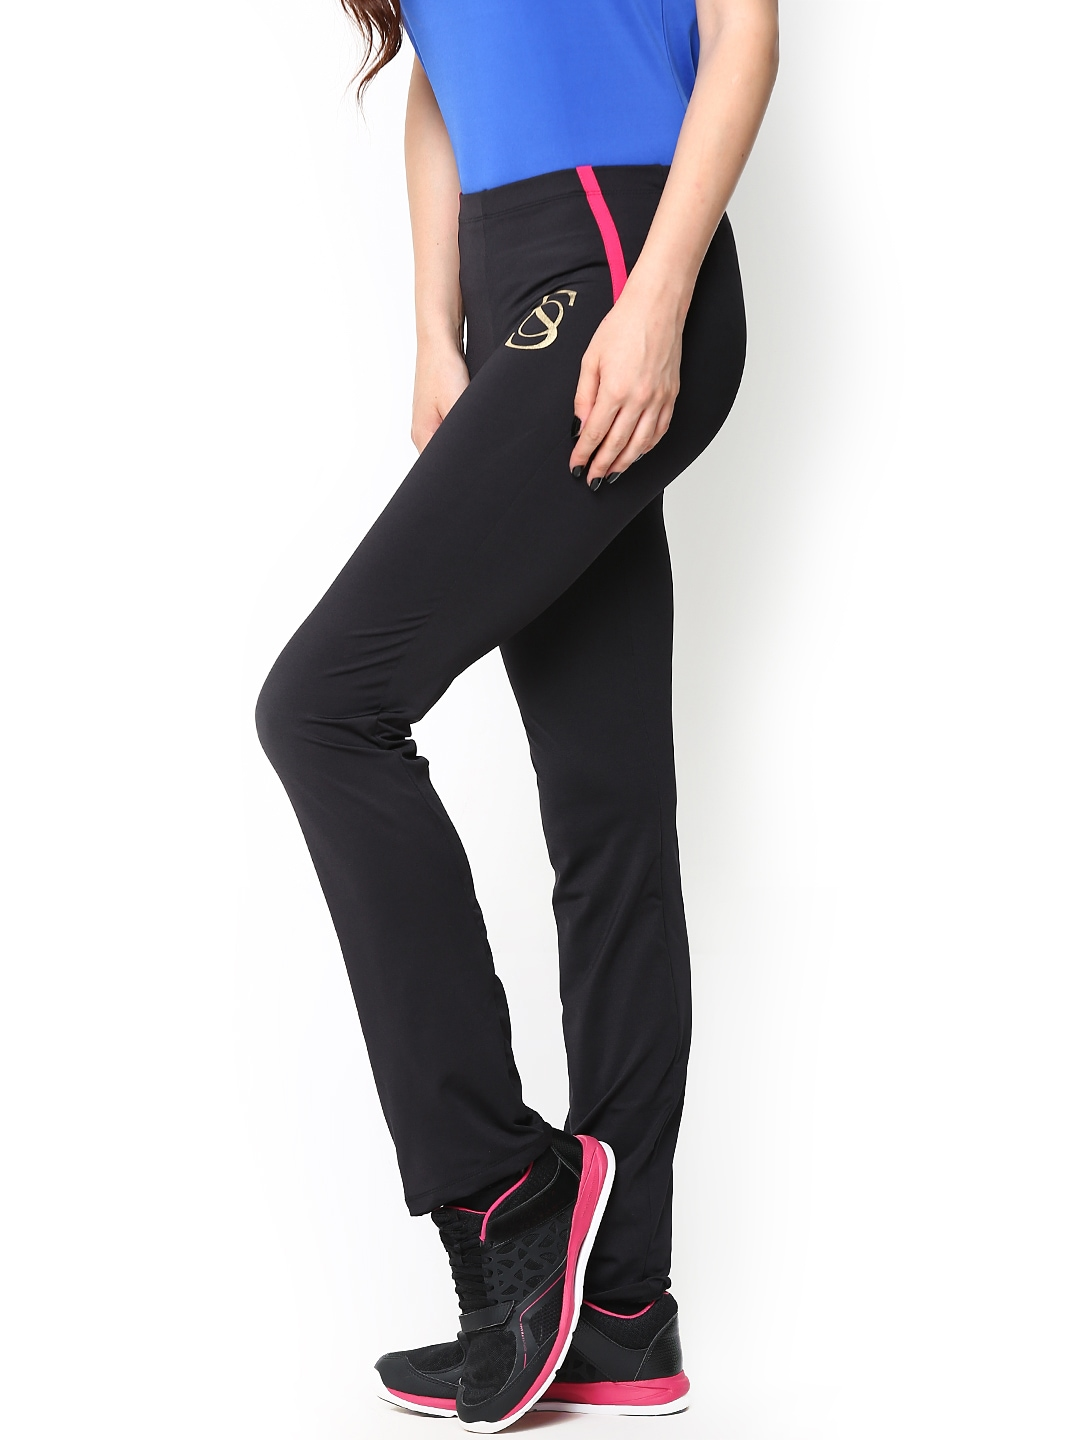 Perfect  186 Women S Clothing Sportswear Style Guns Black Track Pants For Women